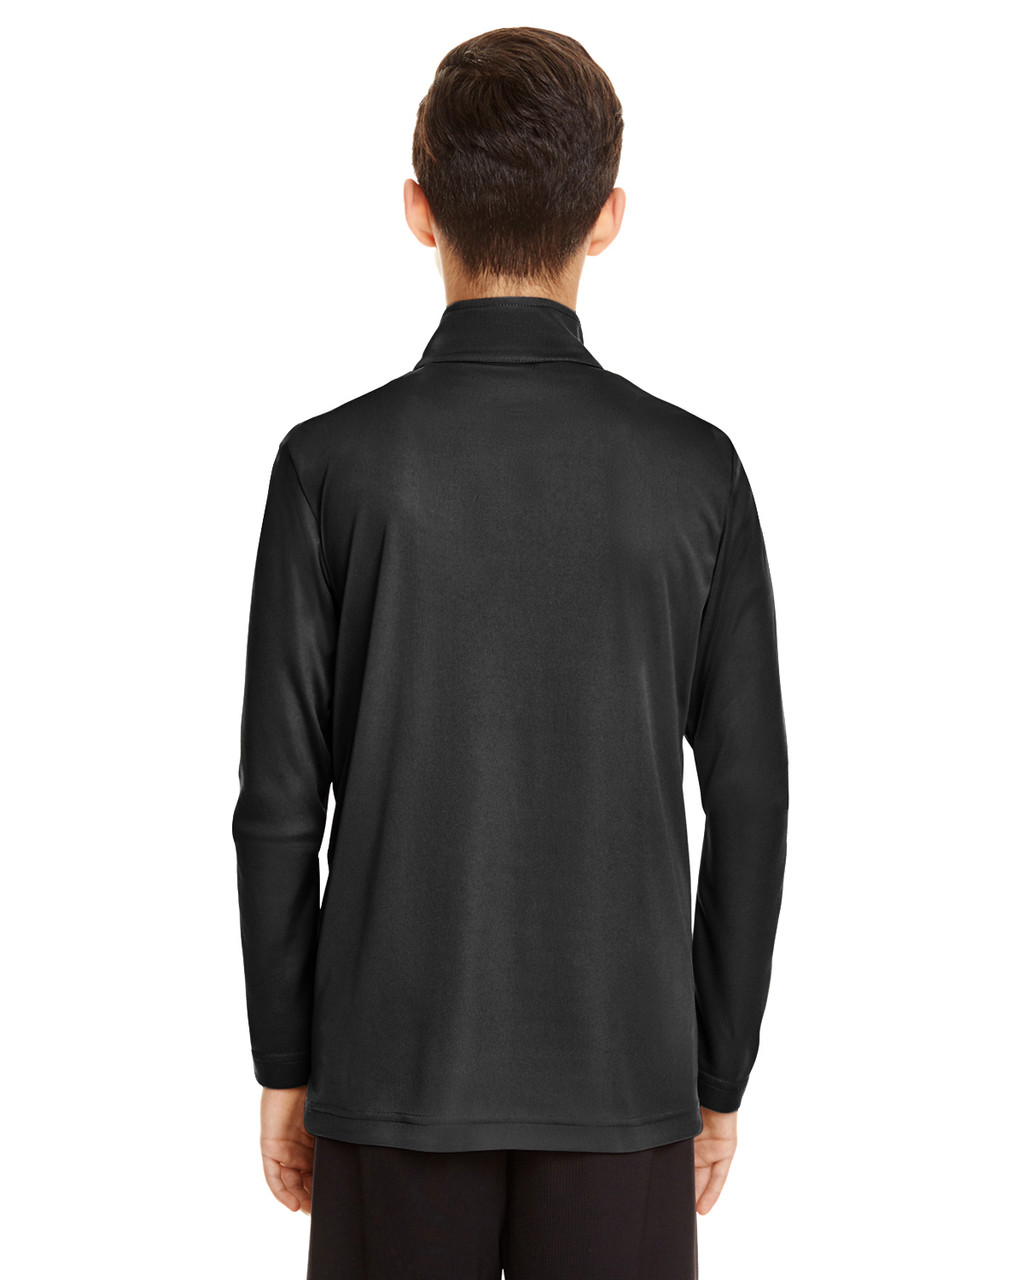 Black - TT31Y Team 365 Youth Zone Performance Quarter-Zip